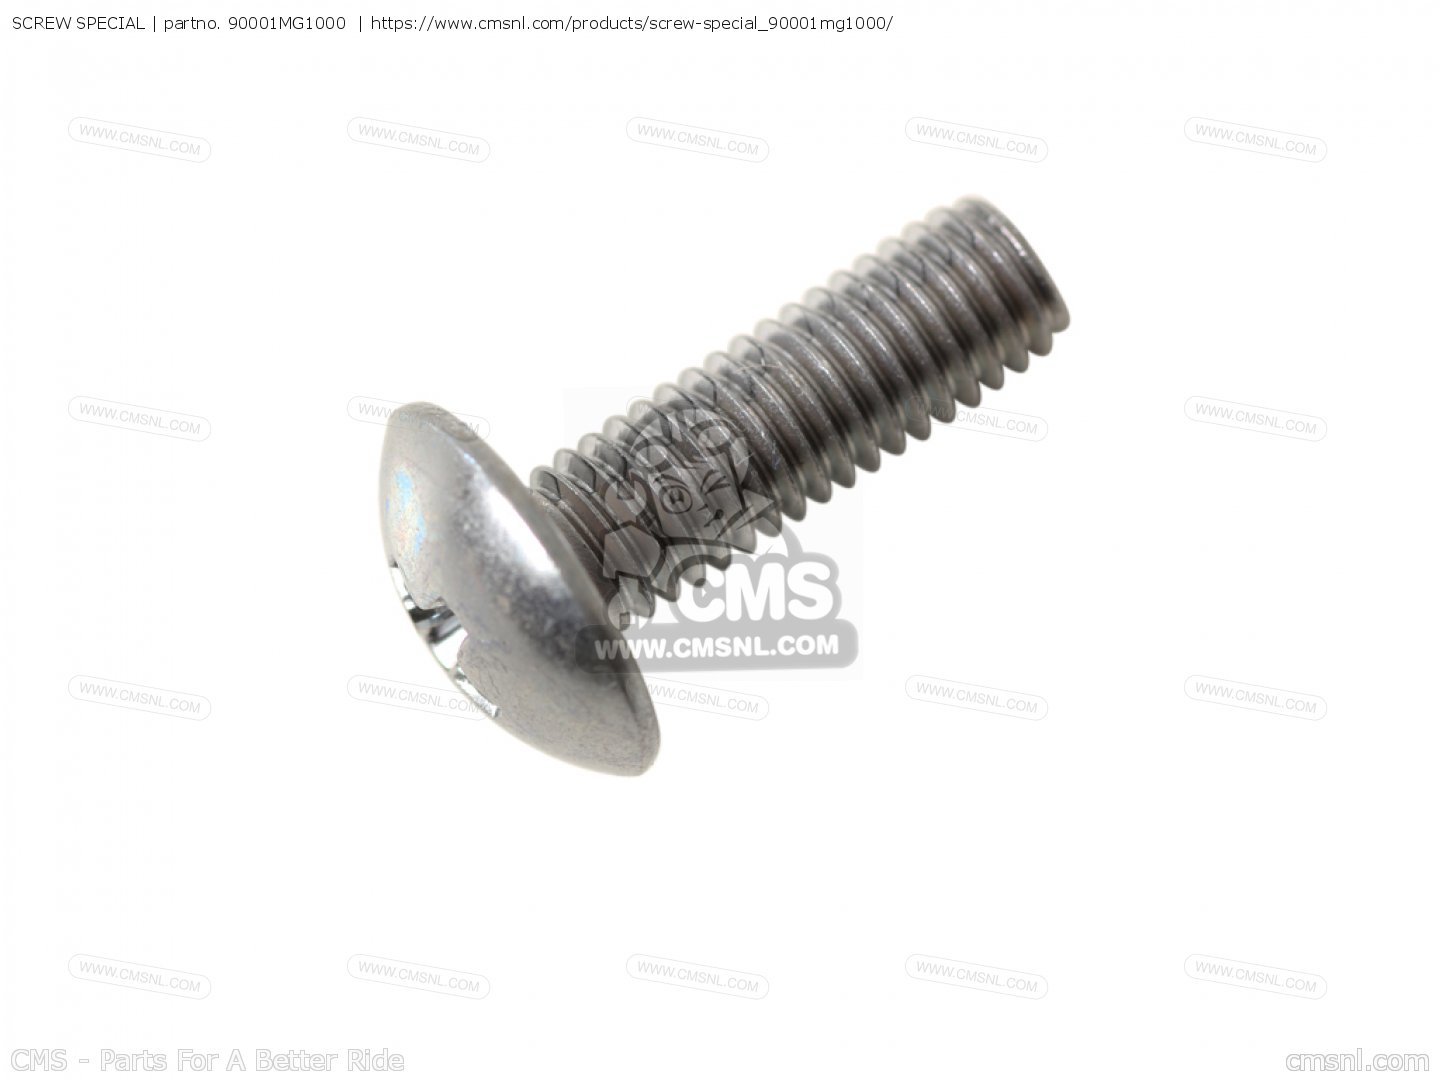 SCREW SPECIAL For XRV750 AFRICA TWIN 1991 M ENGLAND